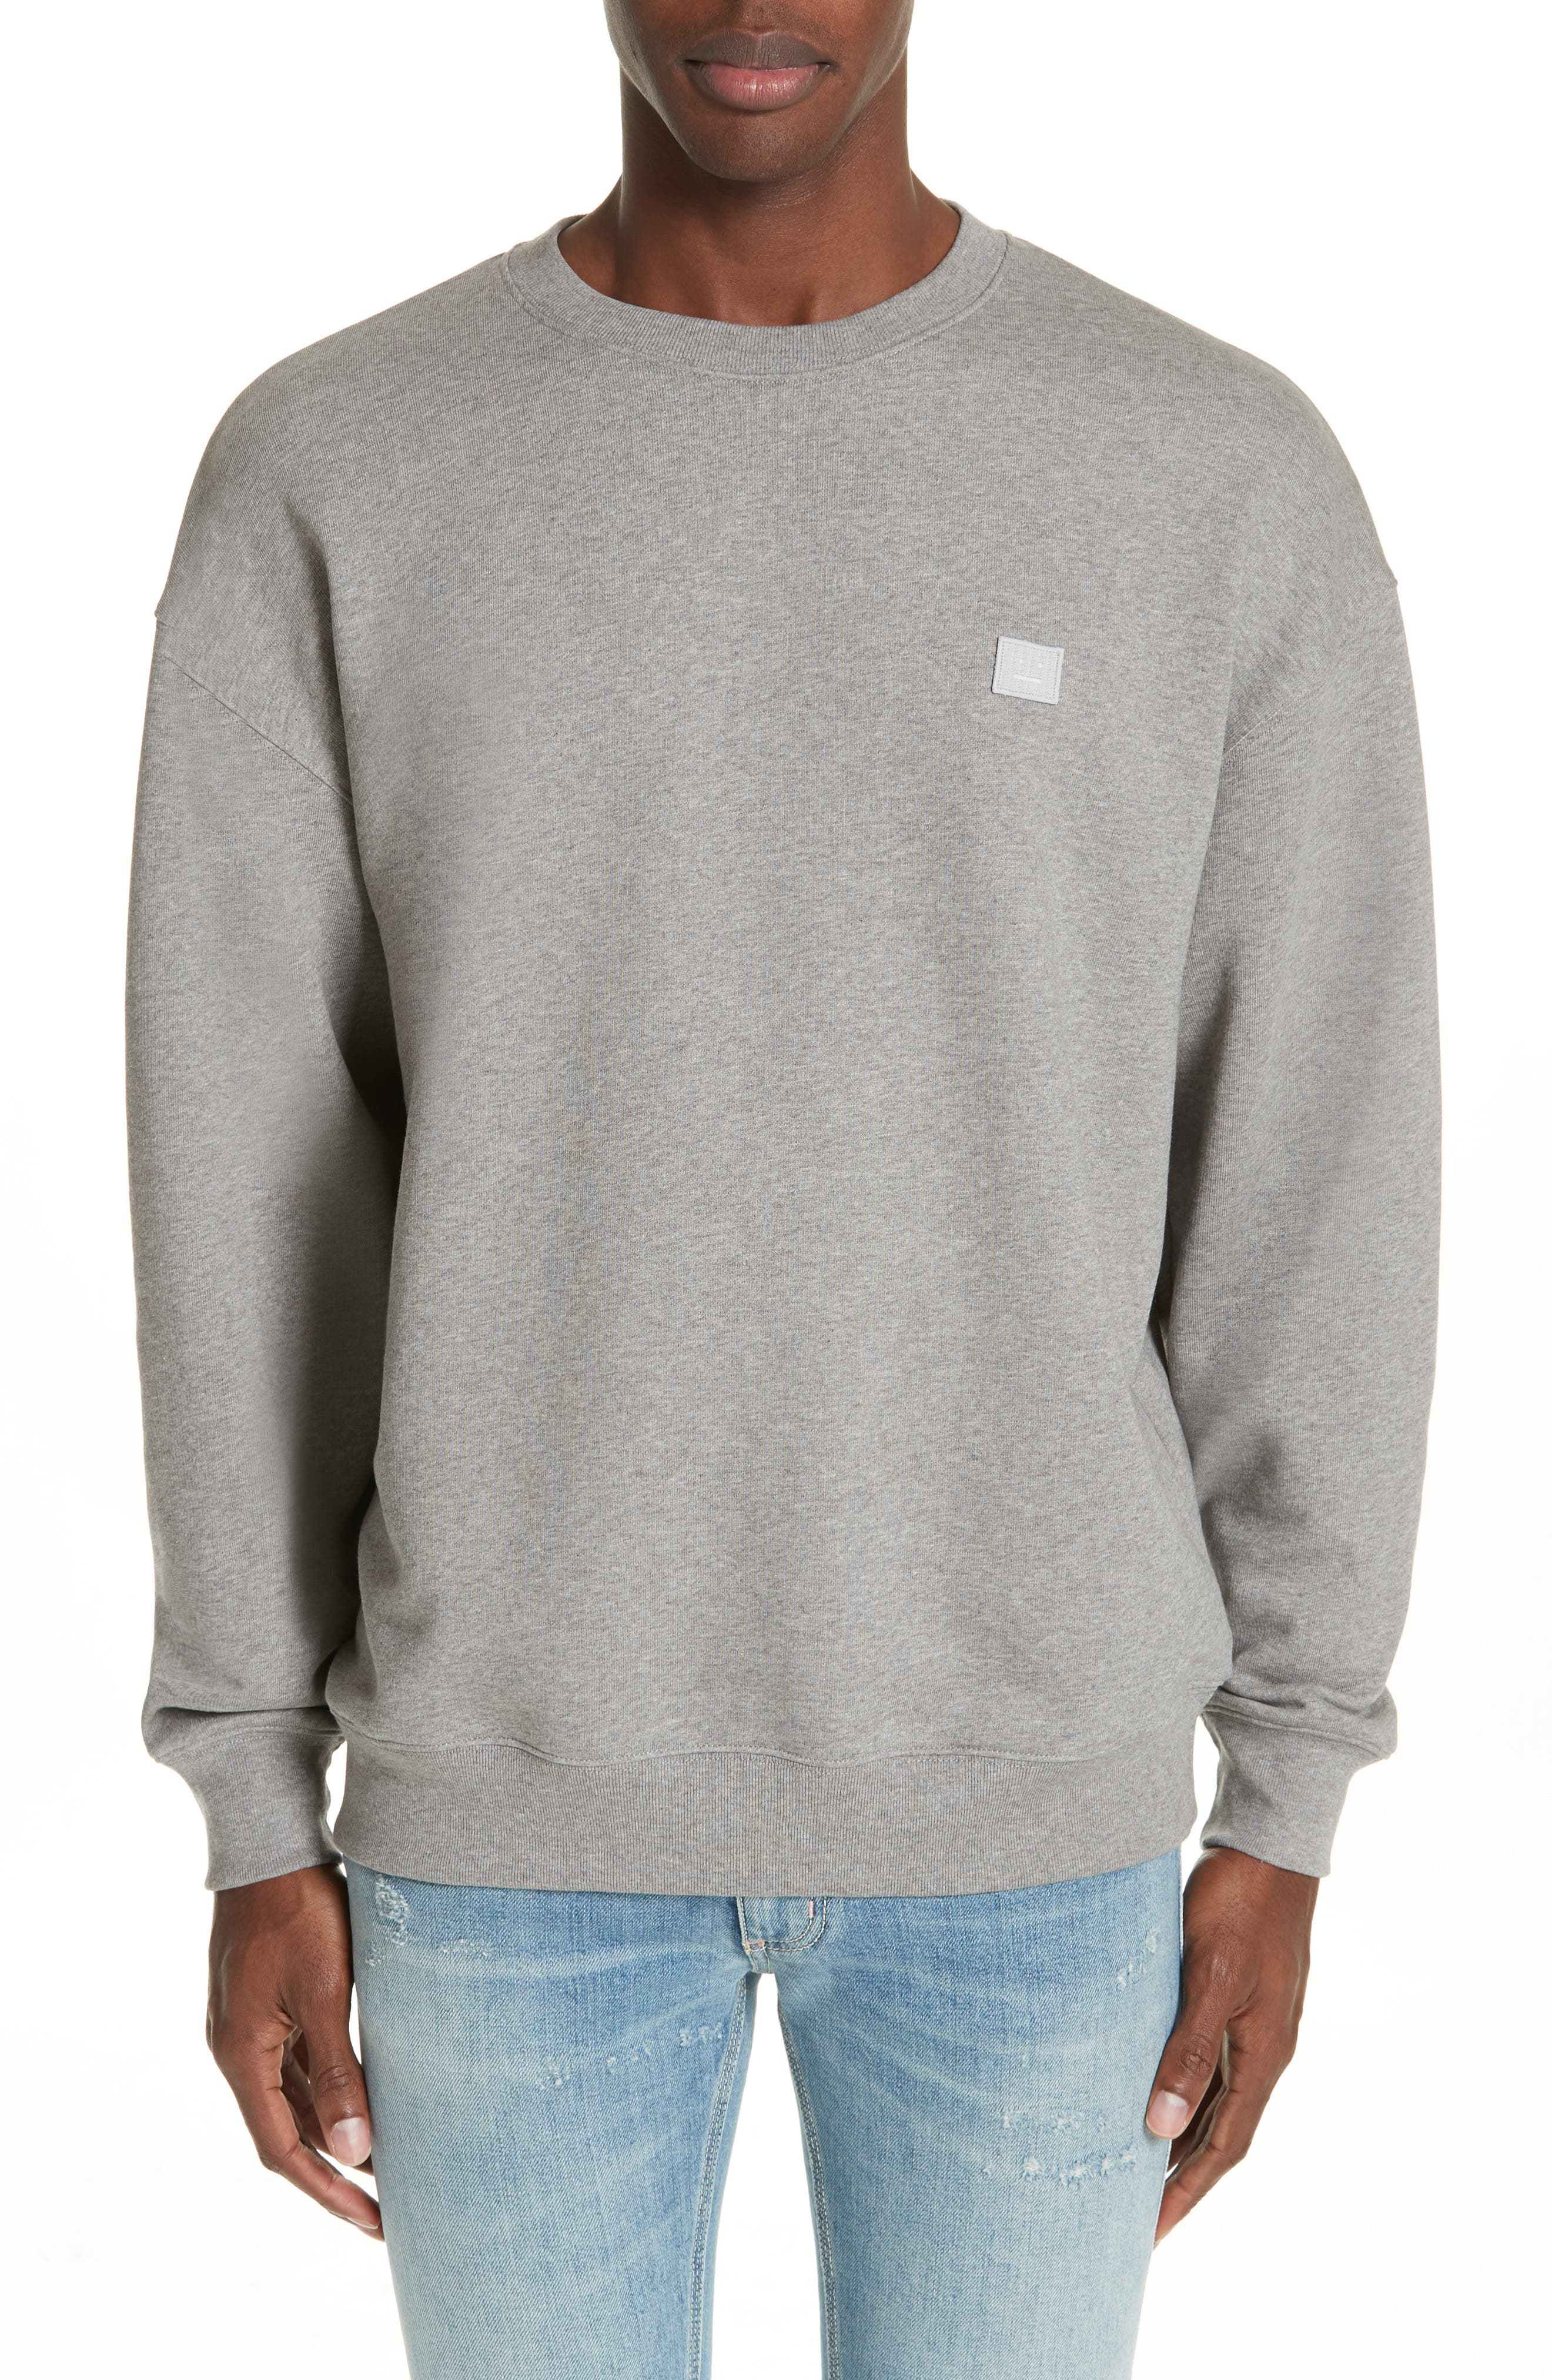 ACNE STUDIOS,                             Forba Face Sweatshirt,                             Main thumbnail 1, color,                             LIGHT GREY MELANGE